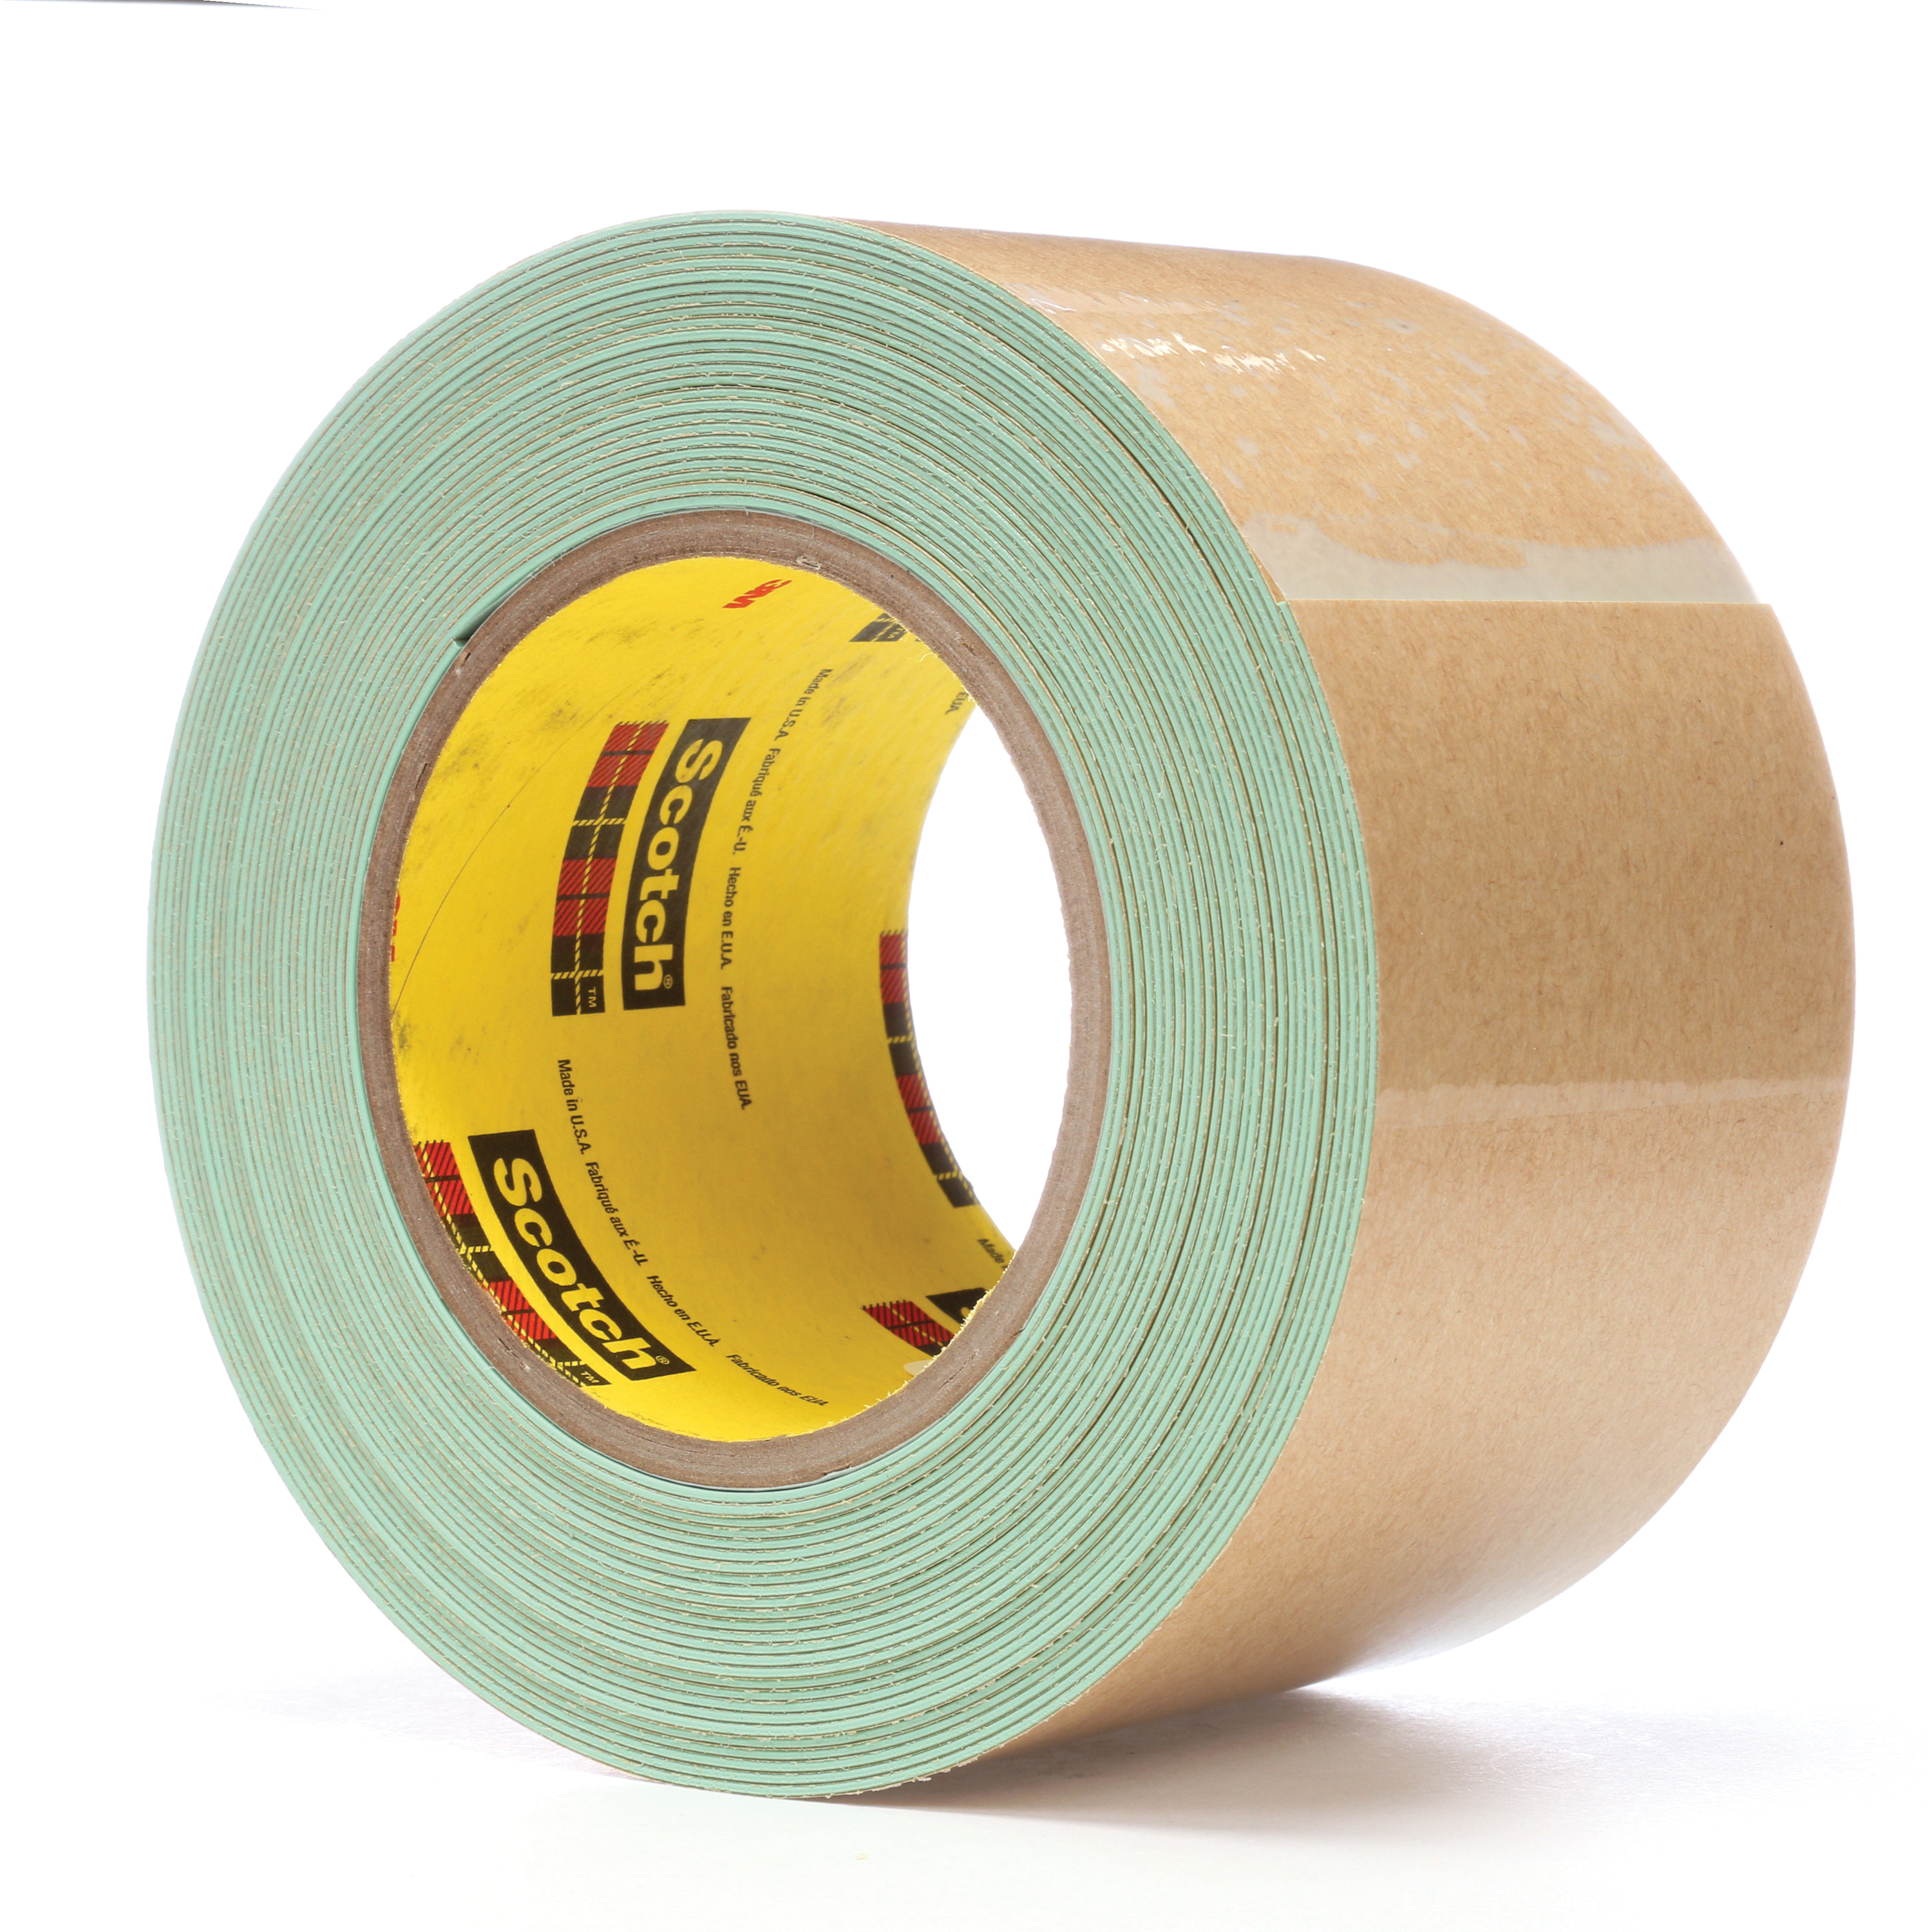 3M™ 021200-24359 500 Impact Stripping Tape, 10 yd L x 3 in W, 36 mil THK, Acrylic Adhesive, Rubber Backing